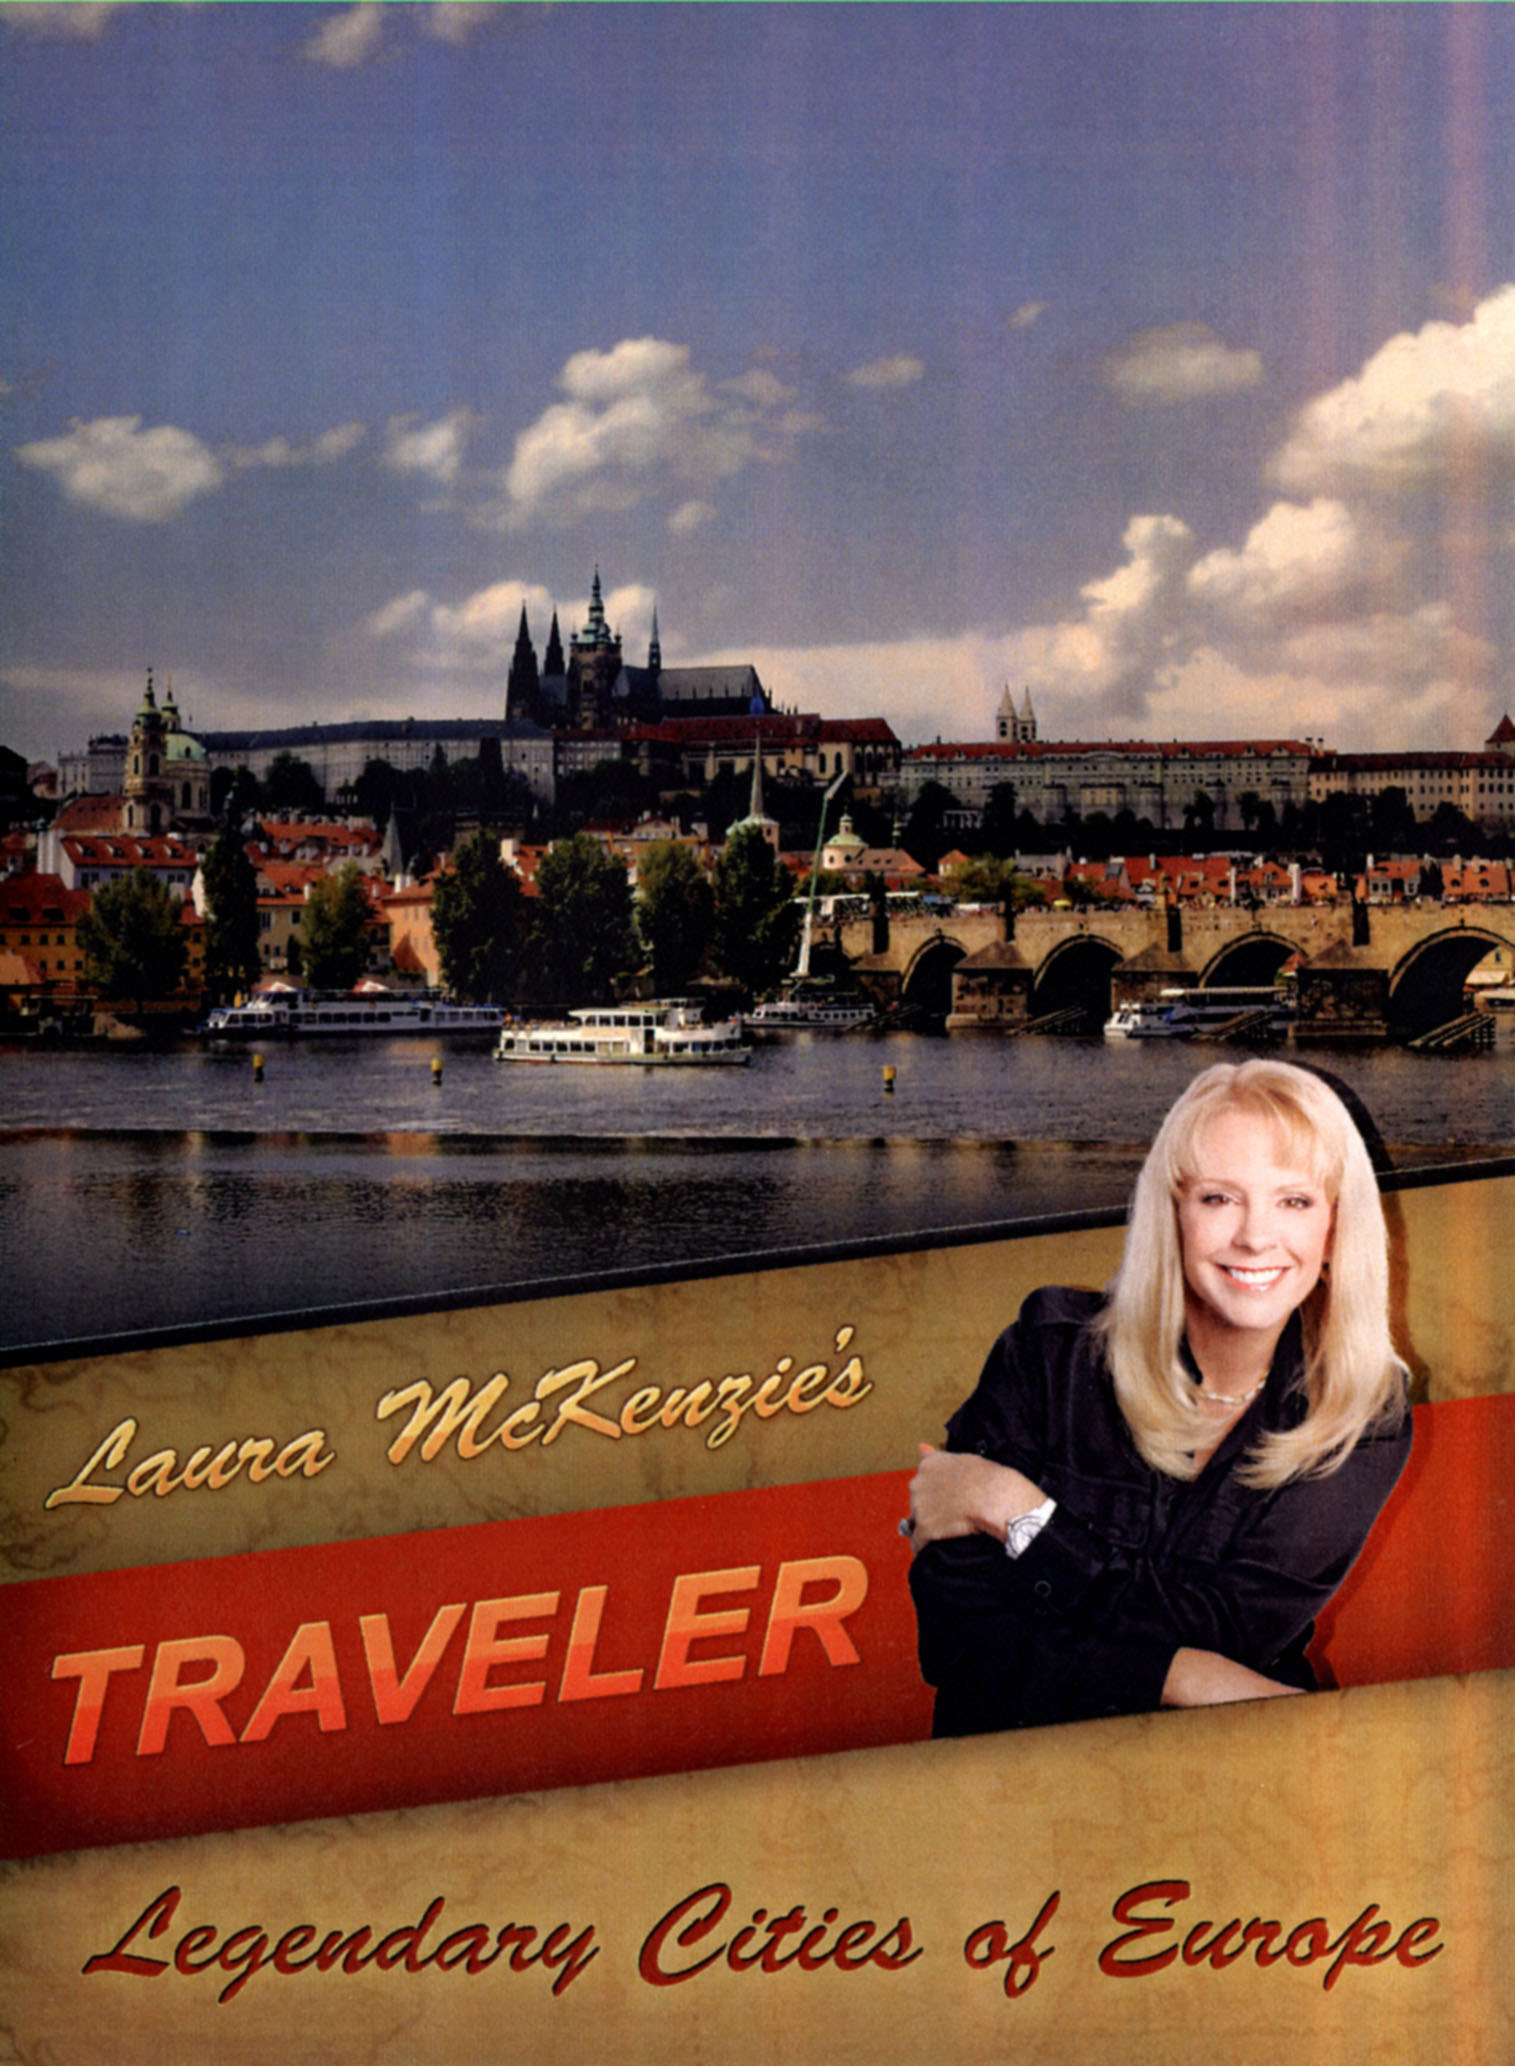 Laura McKenzie's Traveler: Legendary Cities of Europe